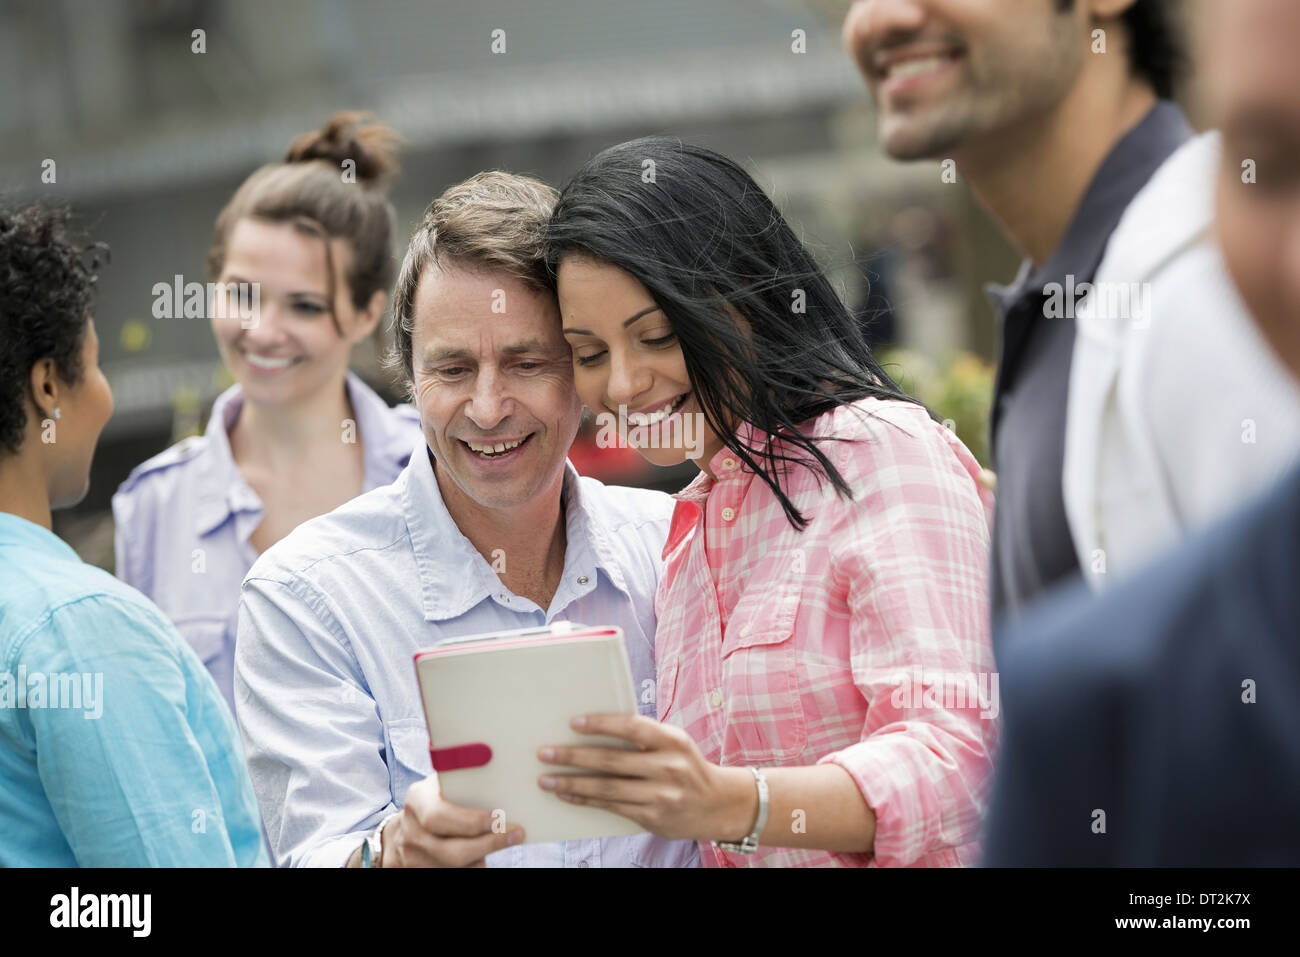 People outdoors spring time New York City a couple in the centre looking at a digital tablet screen Stock Photo